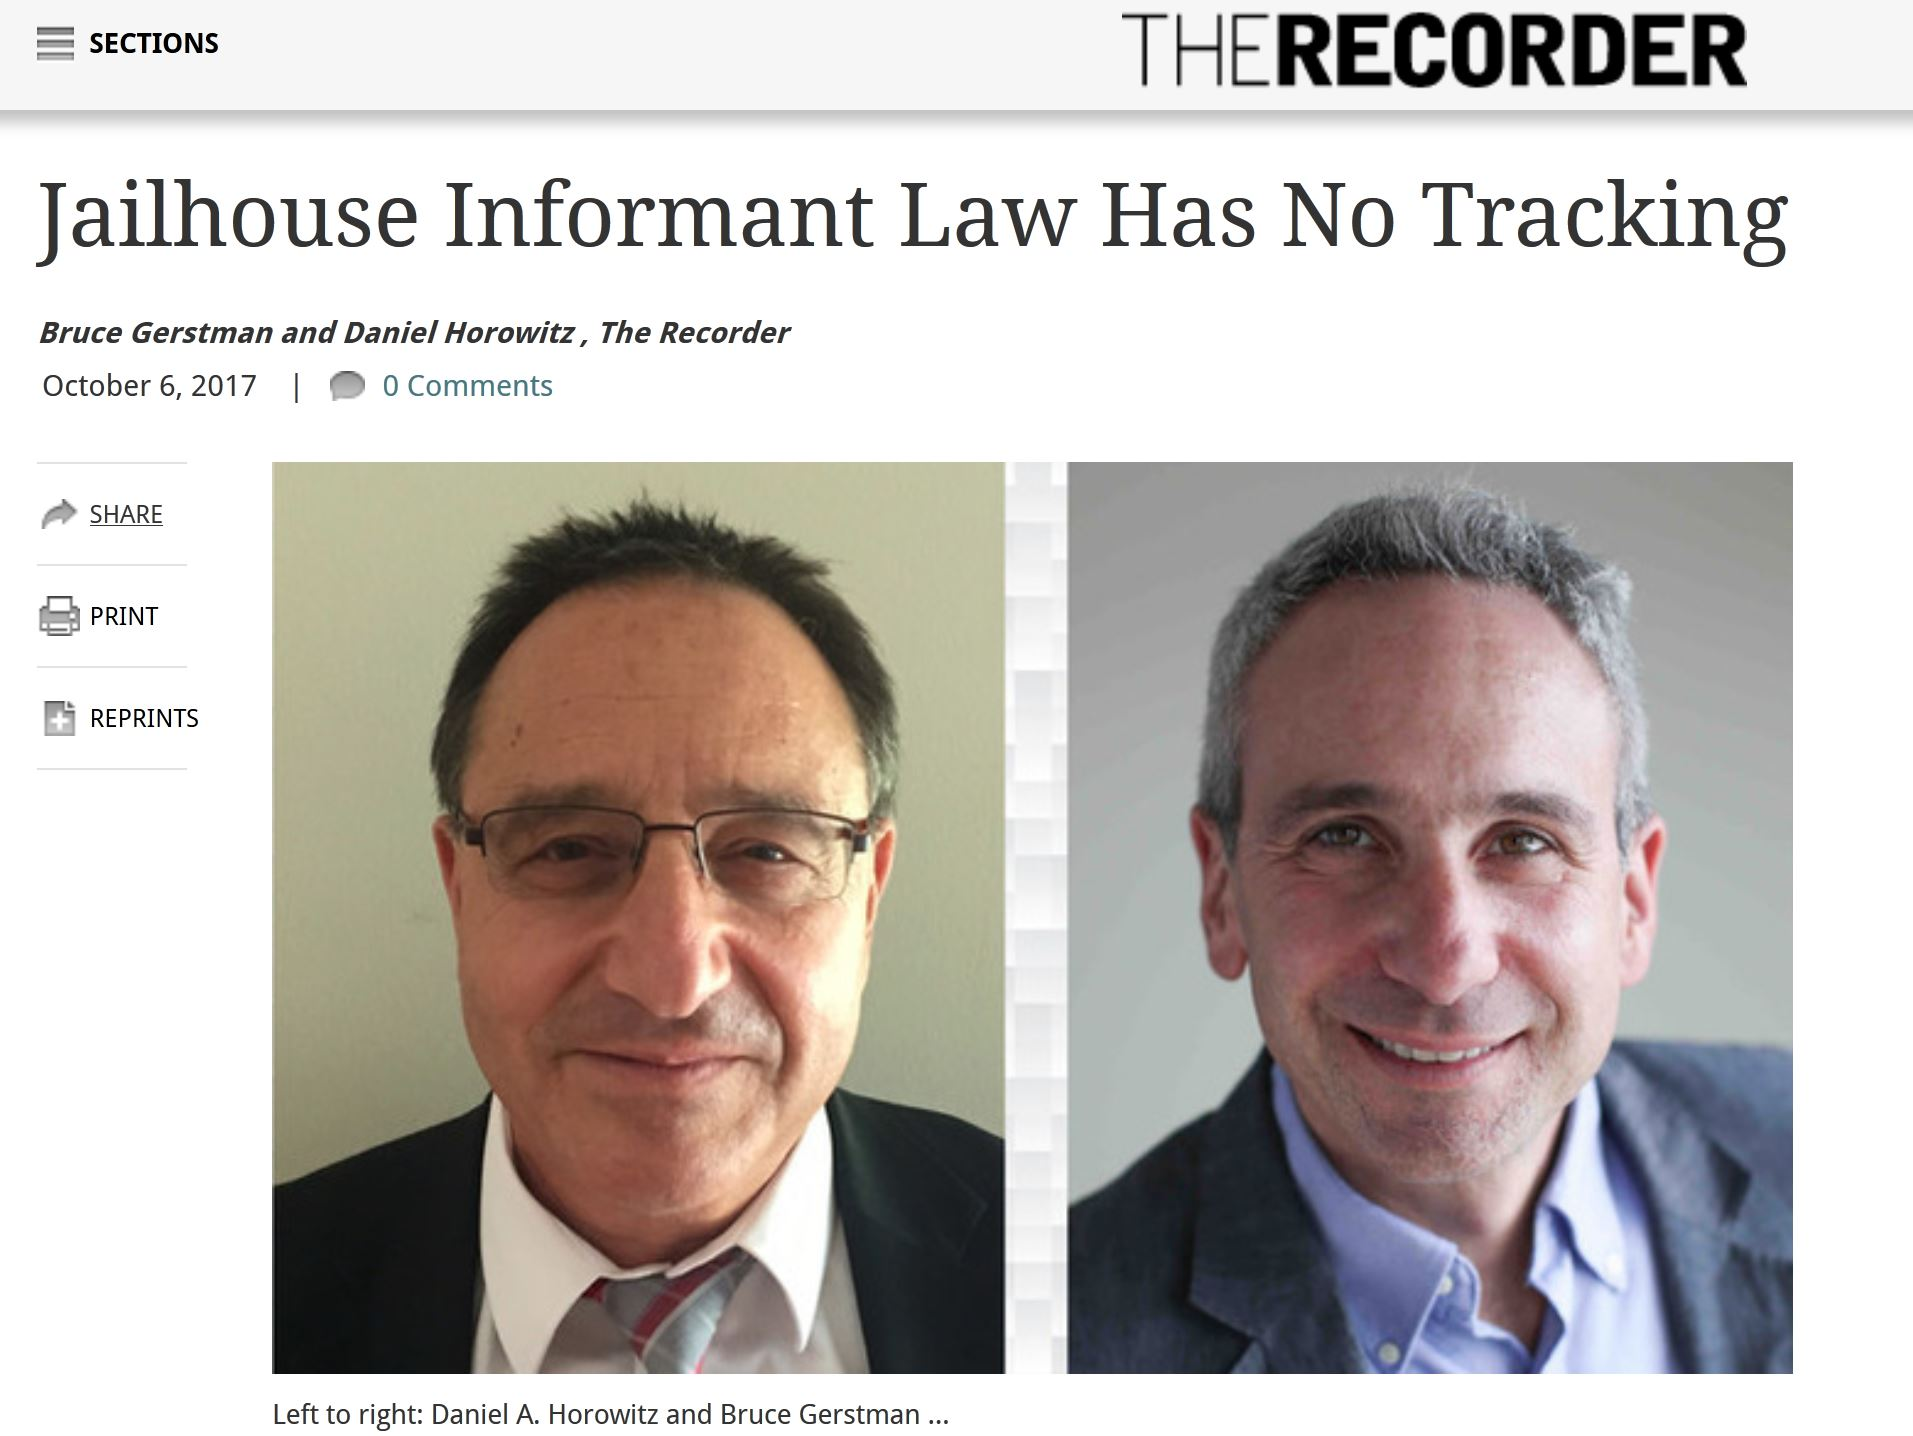 "Daniel Horowitz attorney and Bruce Gerstman private investigator discuss jailhouse informant law and loopholes which allow informants to escape exposure. Photo has Horowitz and Gerstaman with the headline Jail house informant law has no tracking - an article in legal paper t""he recorder"" written by criminal defense attorney daniel horowitz and criminal private investigator bruce gerstman about jail house informers and the lack of tracking of their activities"